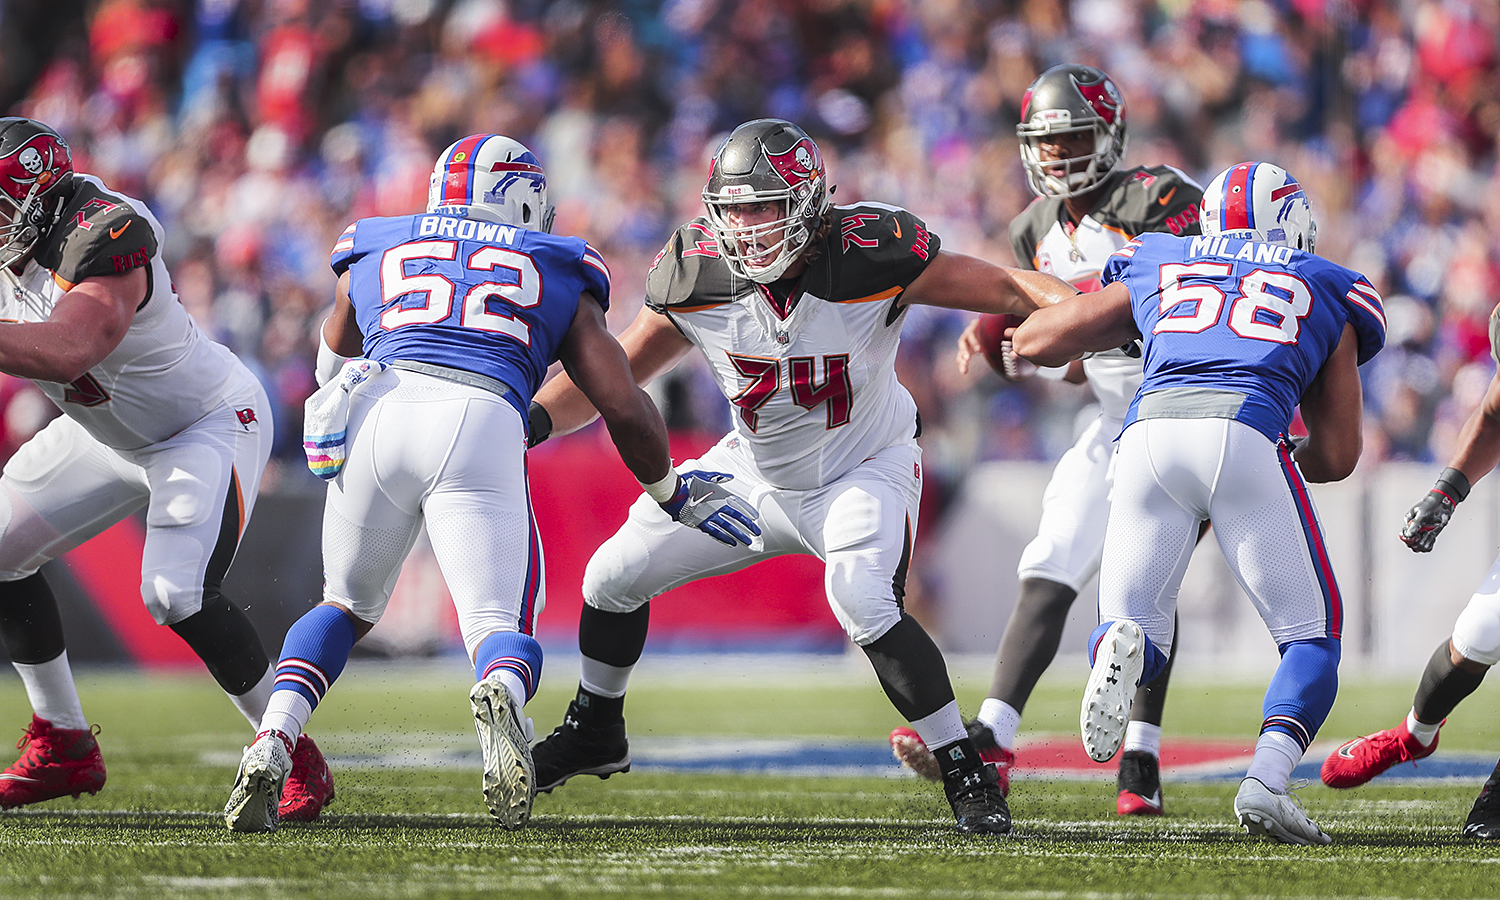 Hobart alumnus Ali Marpet '15 pass blocks during the Buffalo Bills vs. Tampa Bay Buccaneers game on Sunday.  Marpet remains the highest drafted DIII player in NFL history.